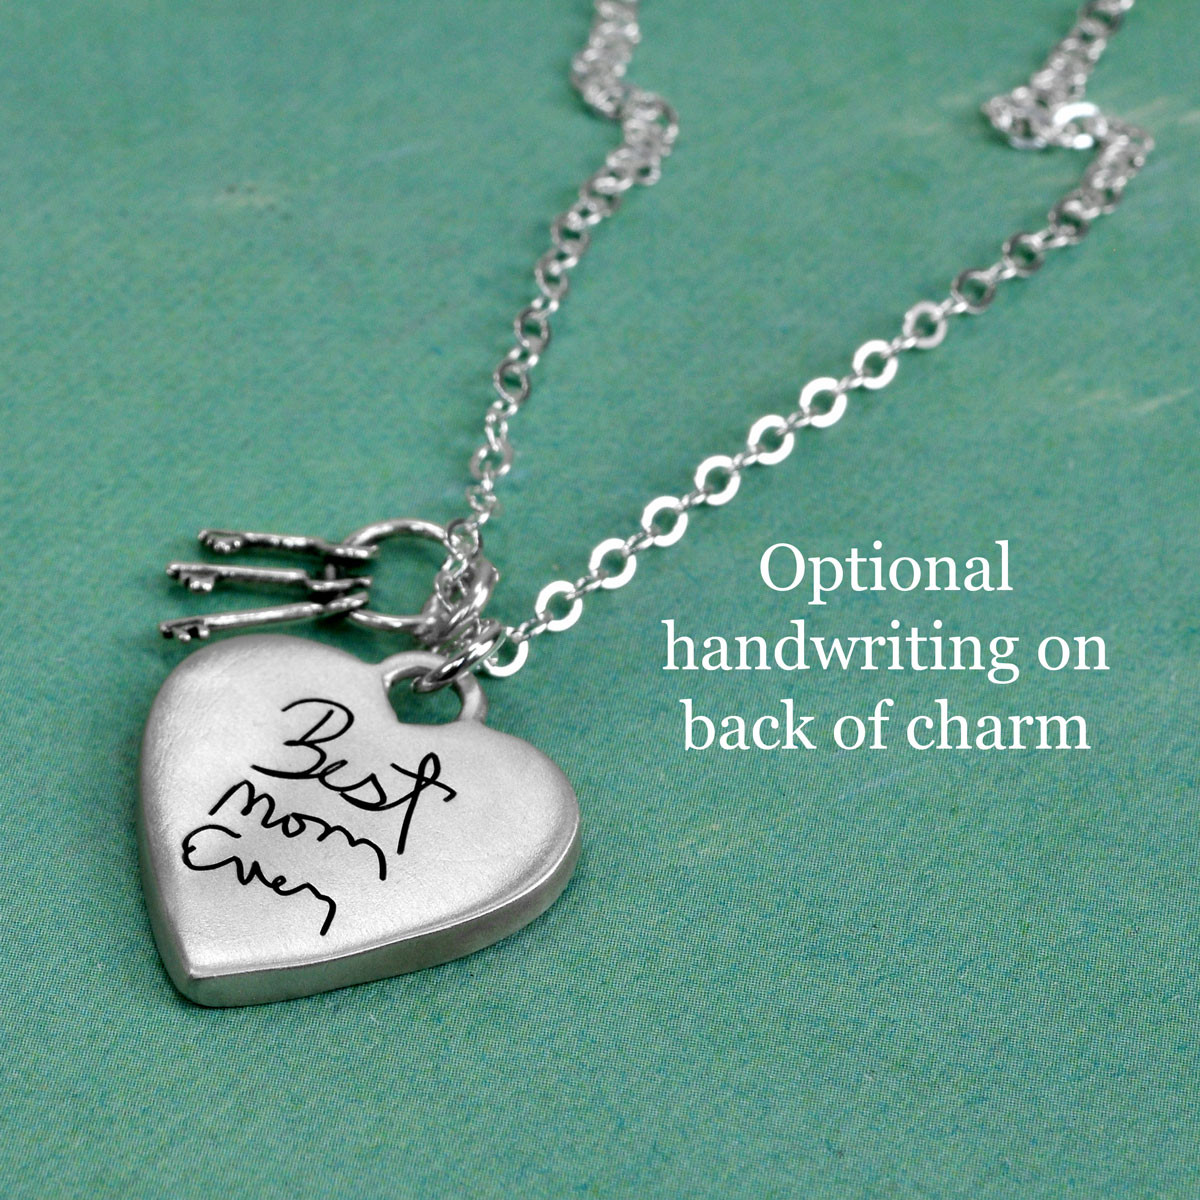 Back of charm on silver Large handwriting heart with keys necklace